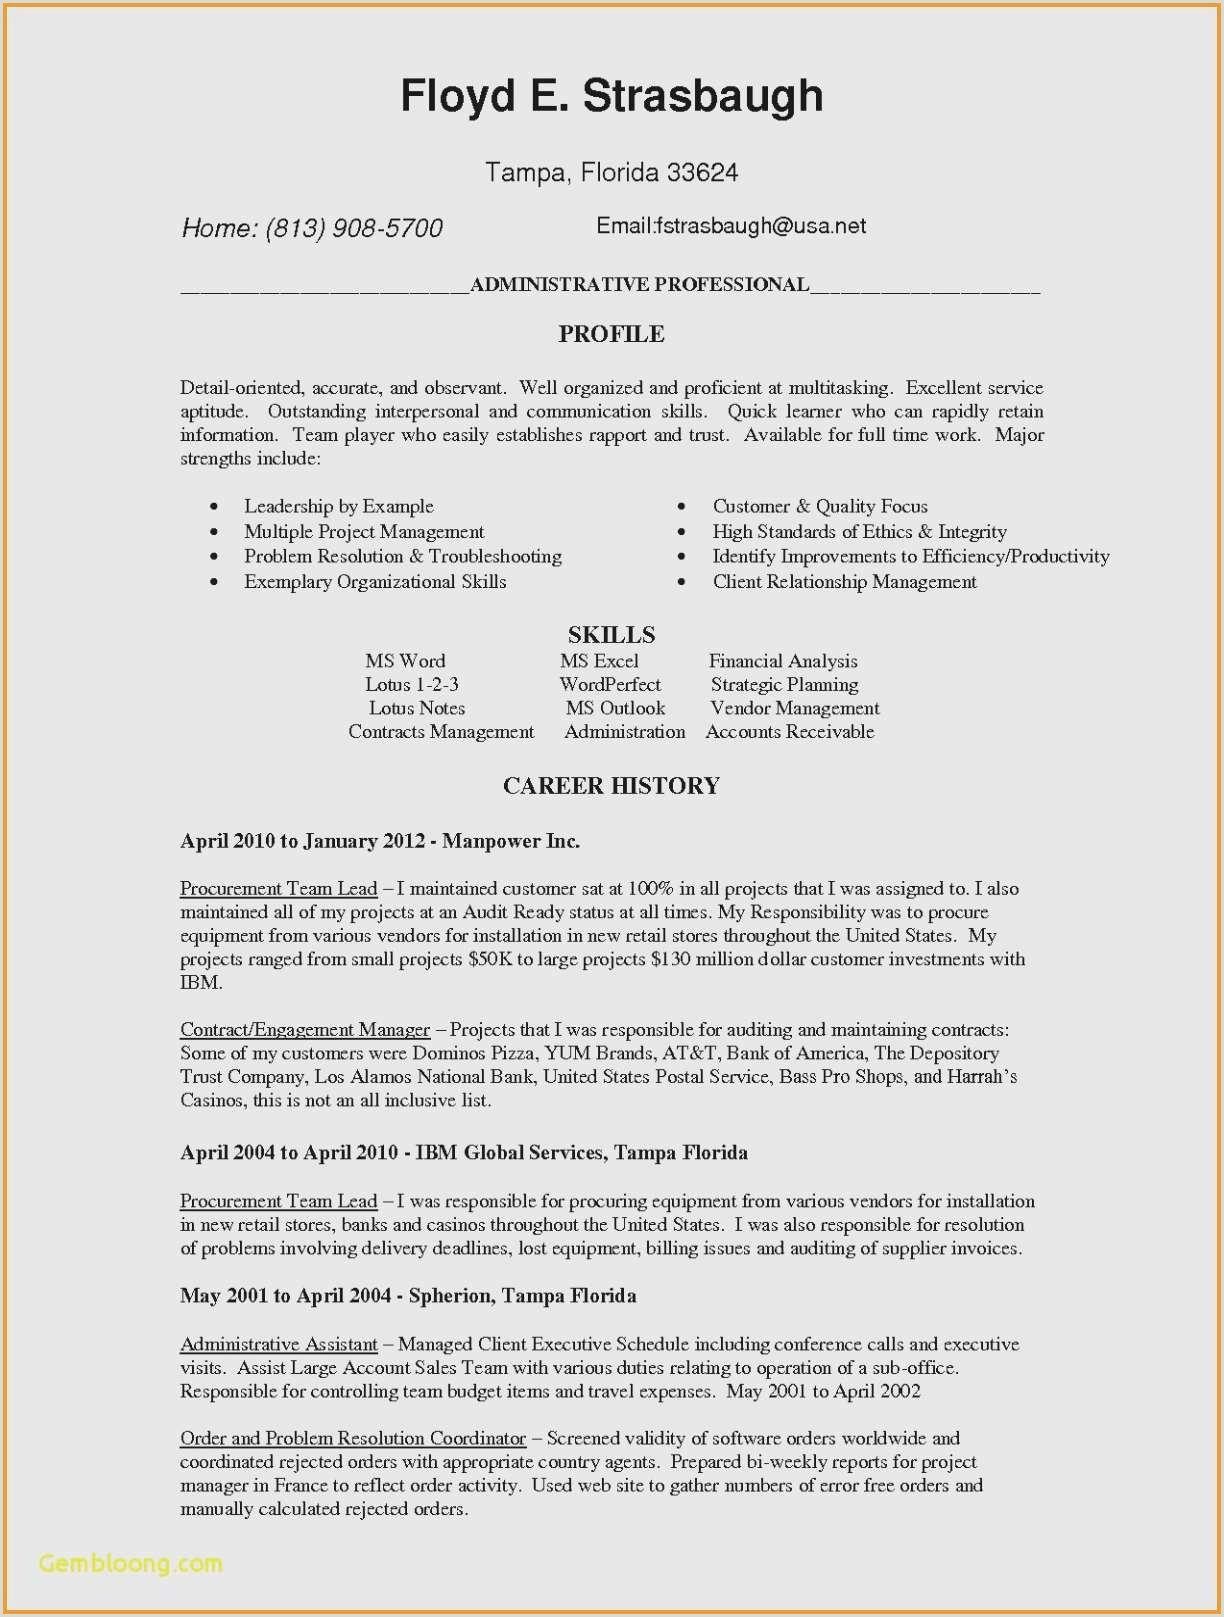 Maintenance Planner Cover Letter 10 Accounting Cover Letter Templates